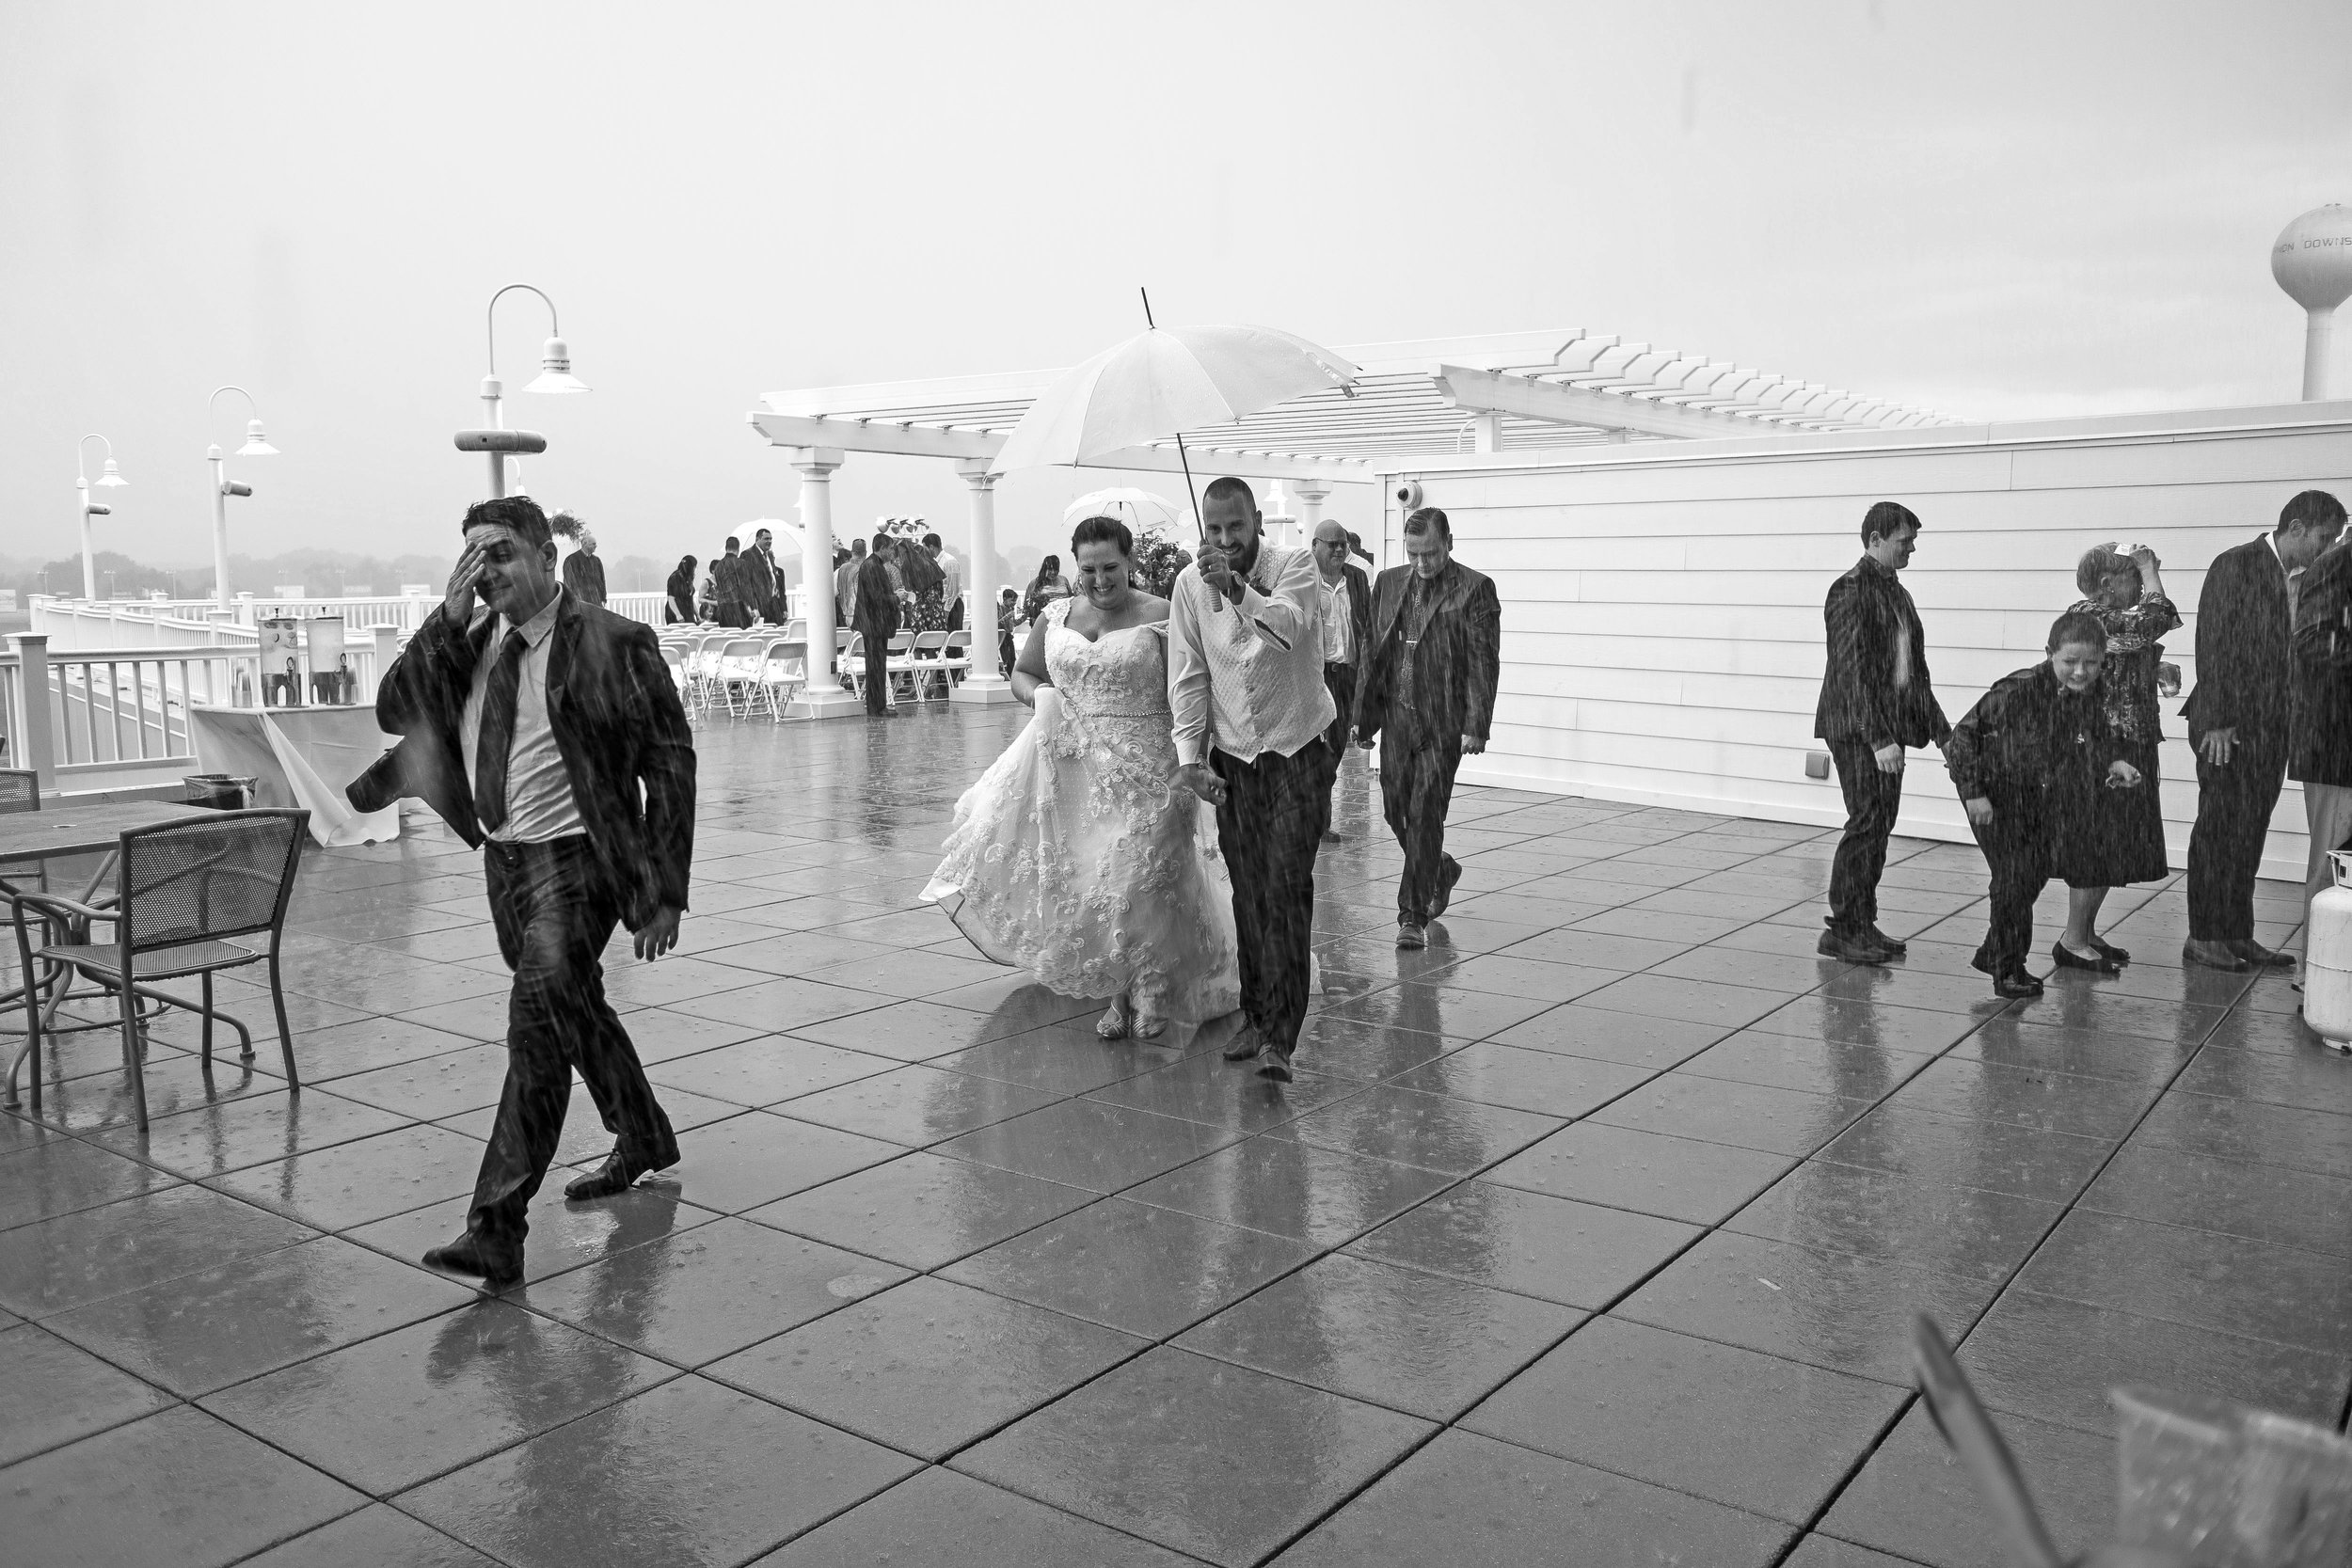 Caitlin and Freddy get married in the rain at Vernon Downs Casino on September 2, 2018 in New York